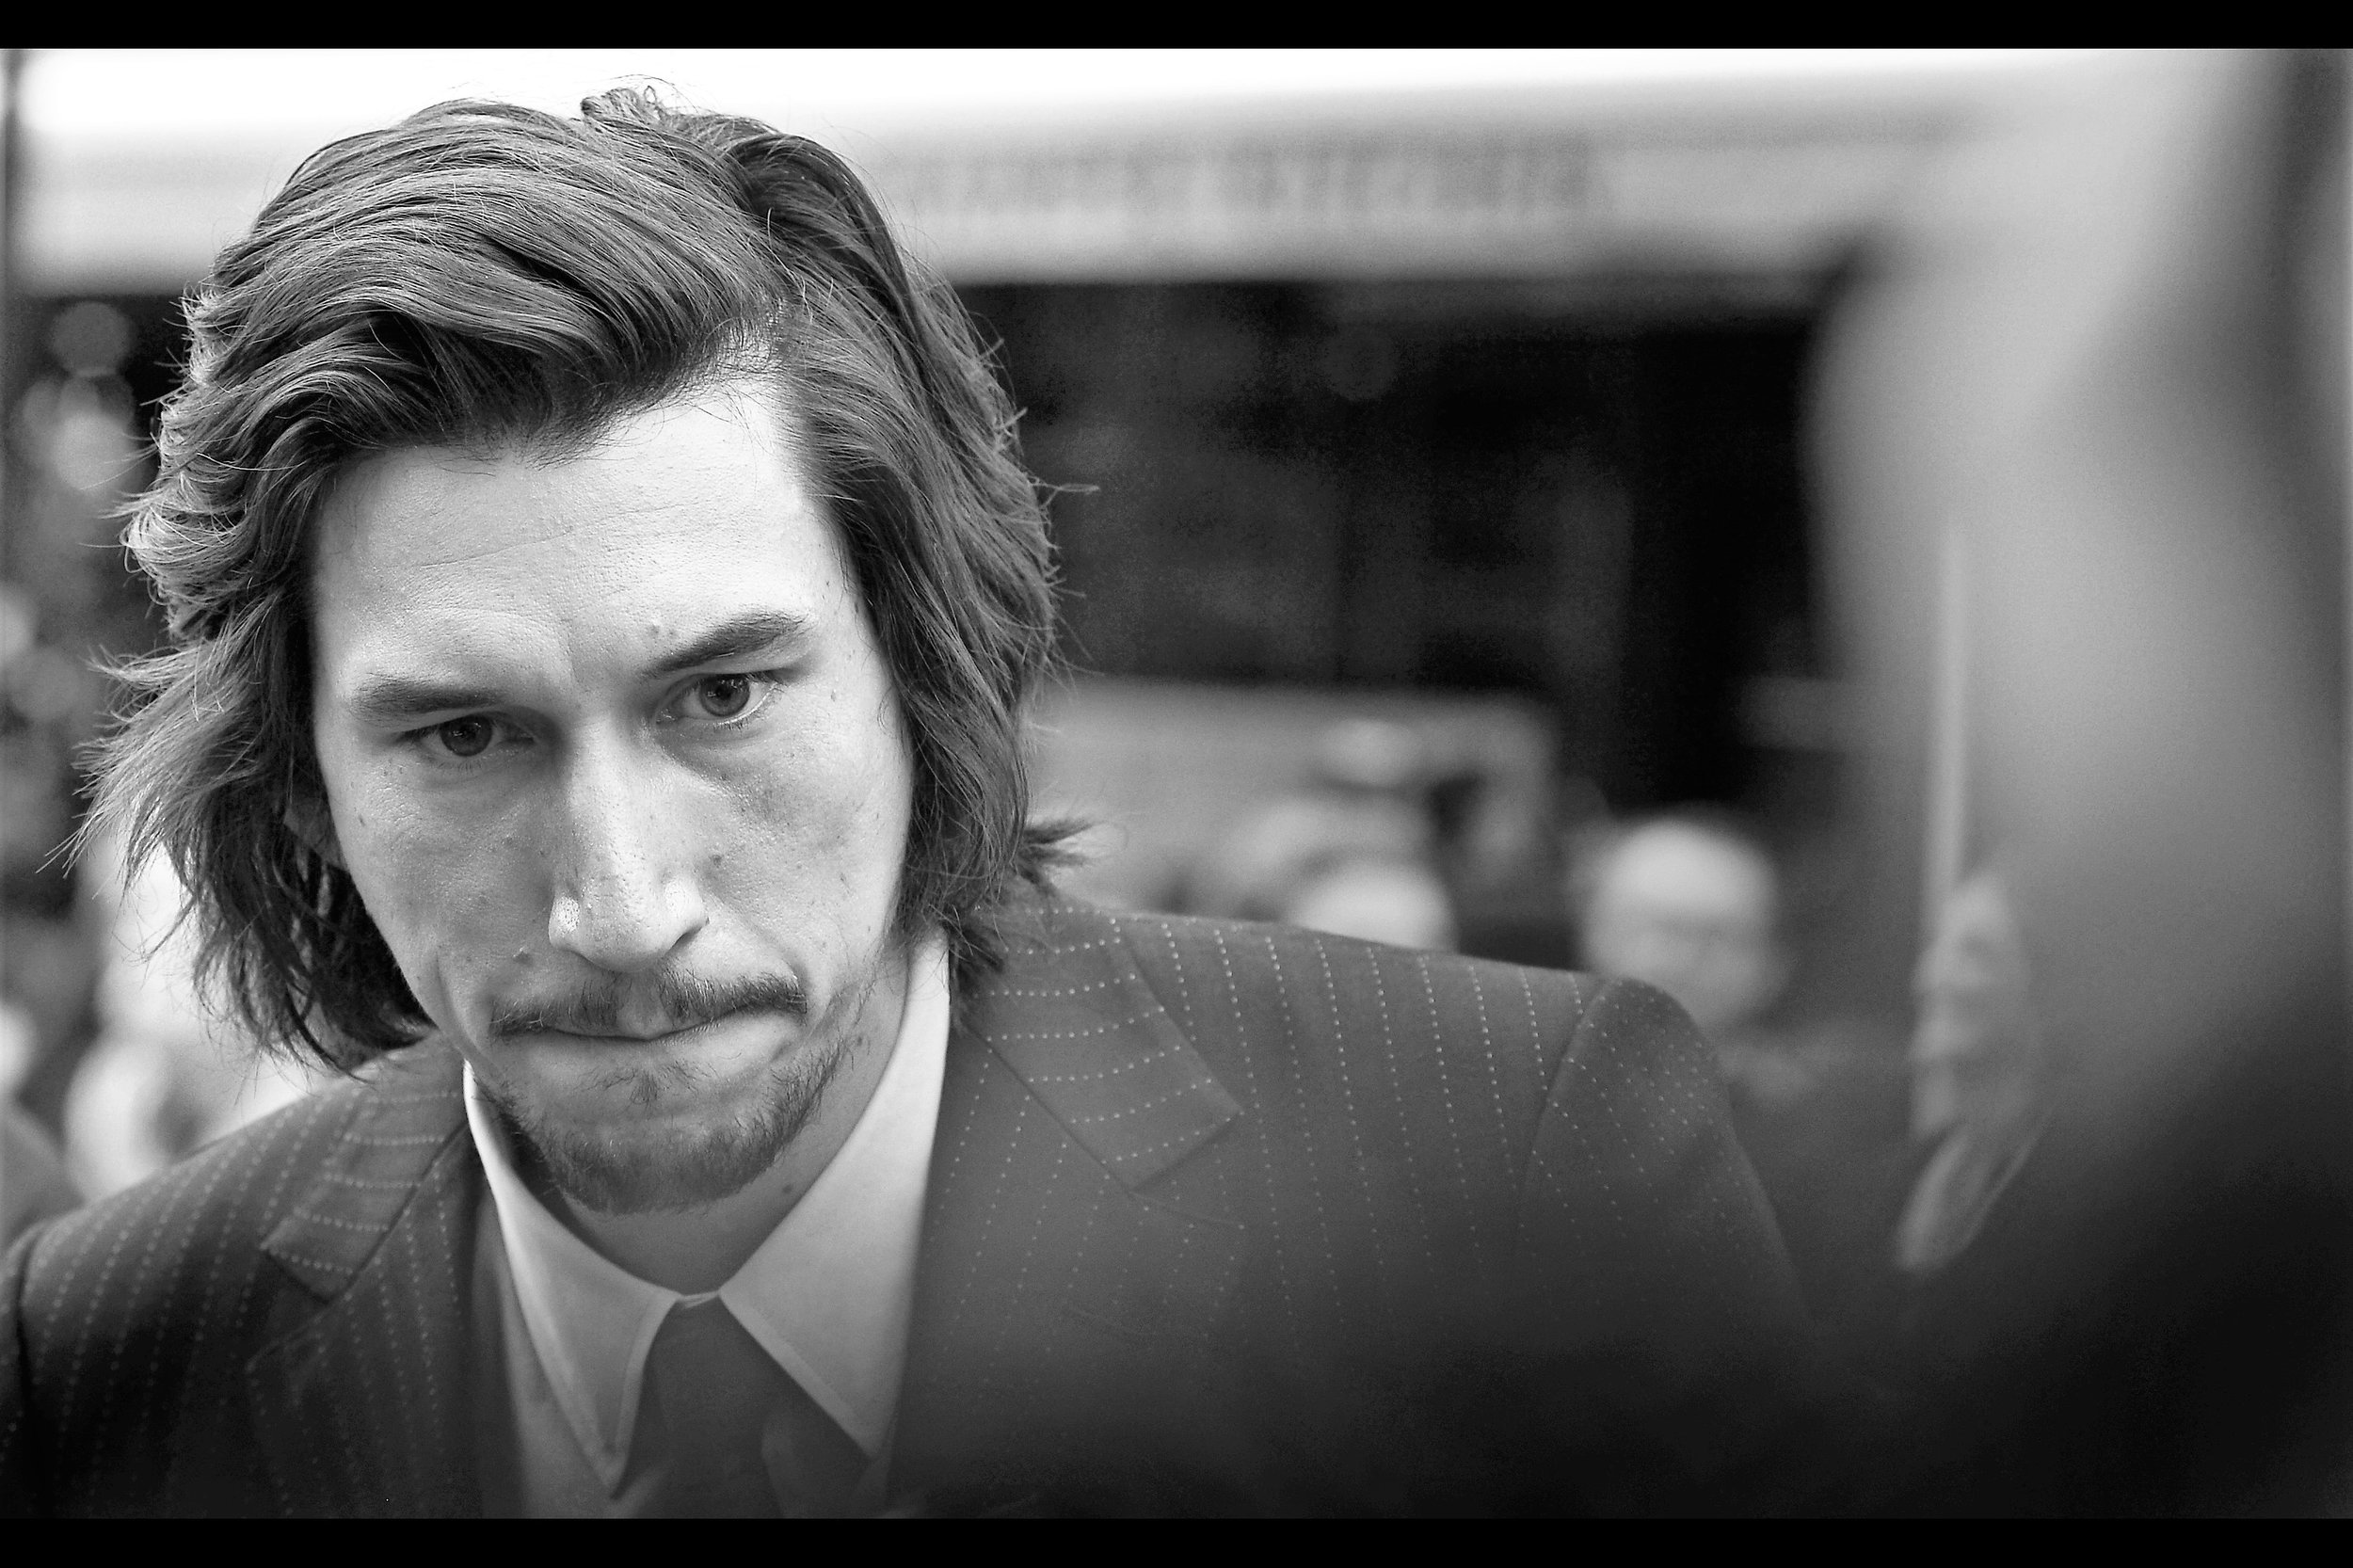 Kylo Ren : Misunderstood Complex Villain, or Whiny Patricidal Emo Trying Desperately To Appear Edgy? - only your version of photoshop's black'n'white filter knows for sure.